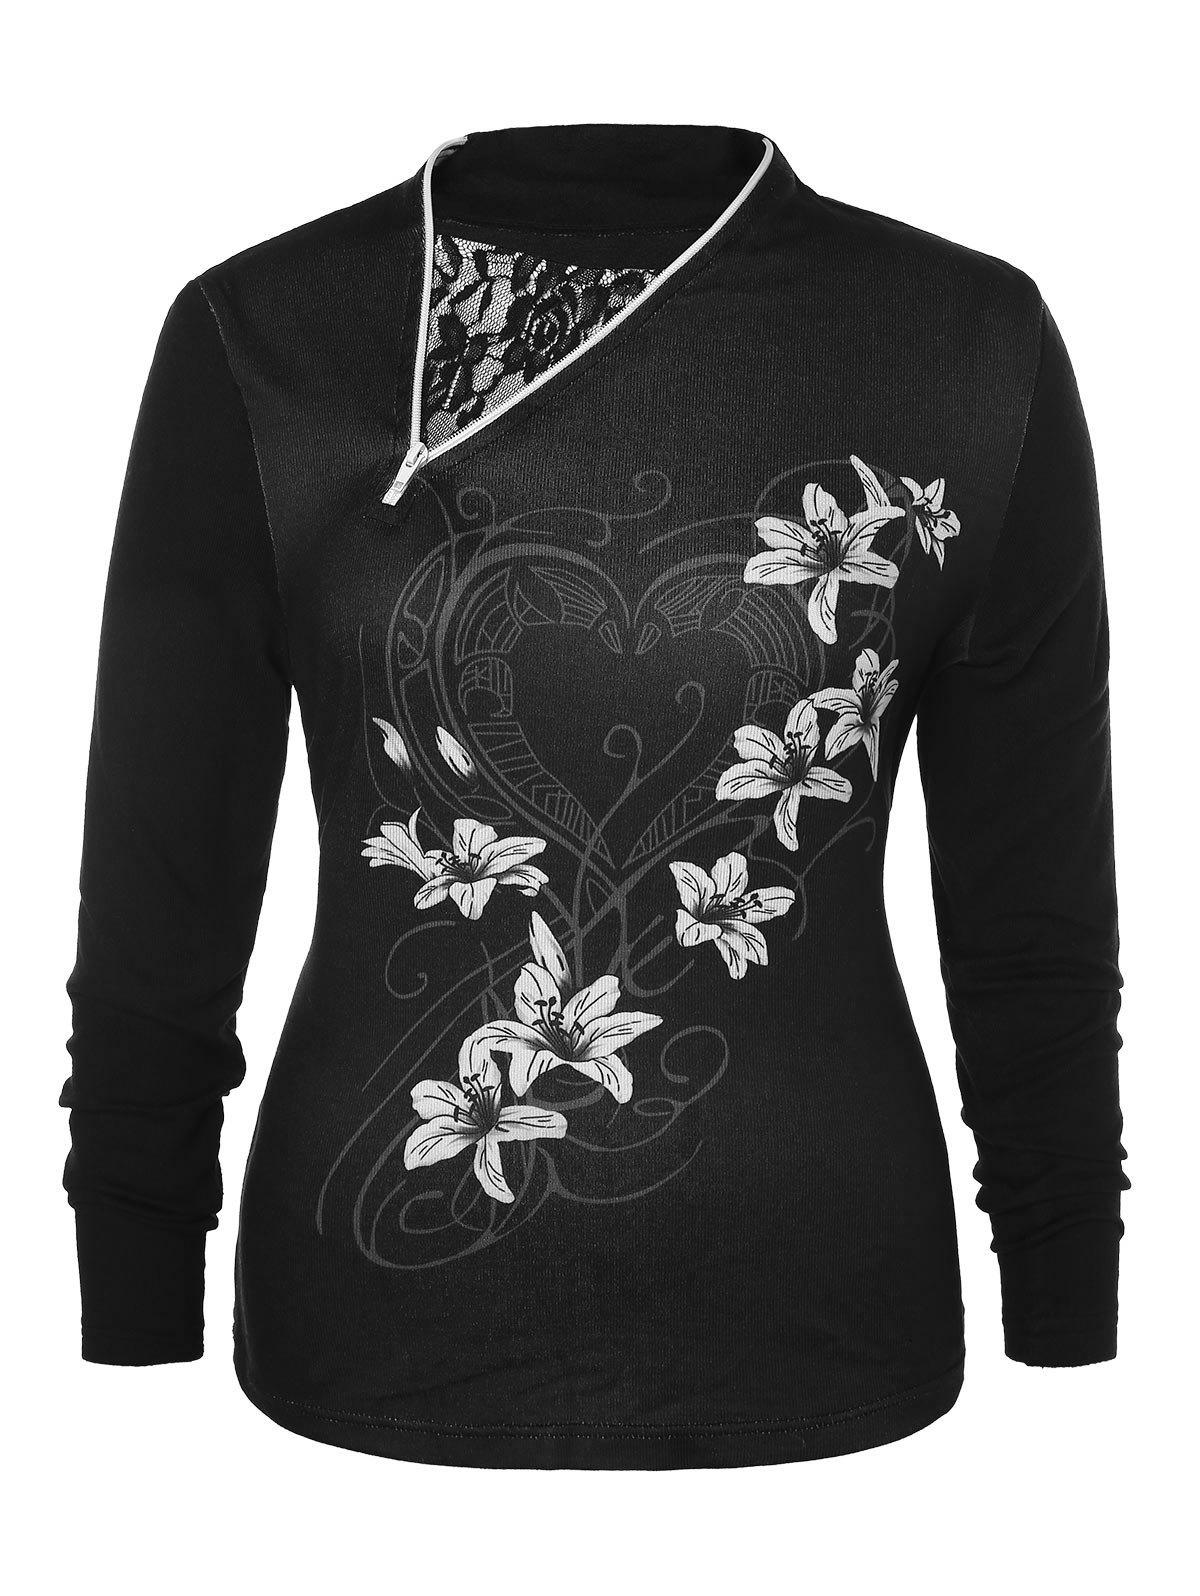 Plus Size Floral Print Zippered T-shirt - BLACK L